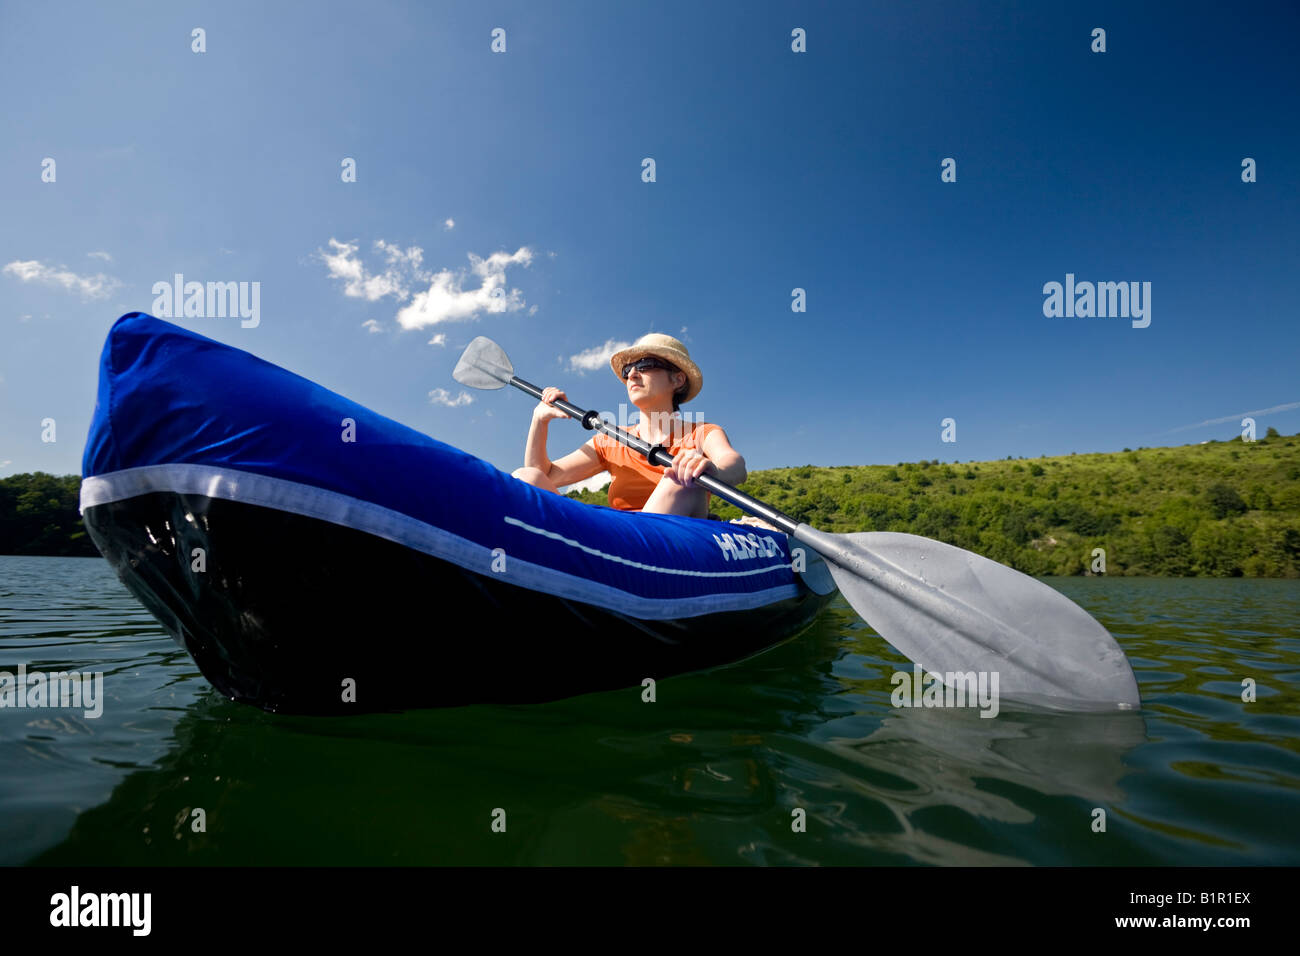 Inflatable Oar Boat Stock Photos & Inflatable Oar Boat Stock